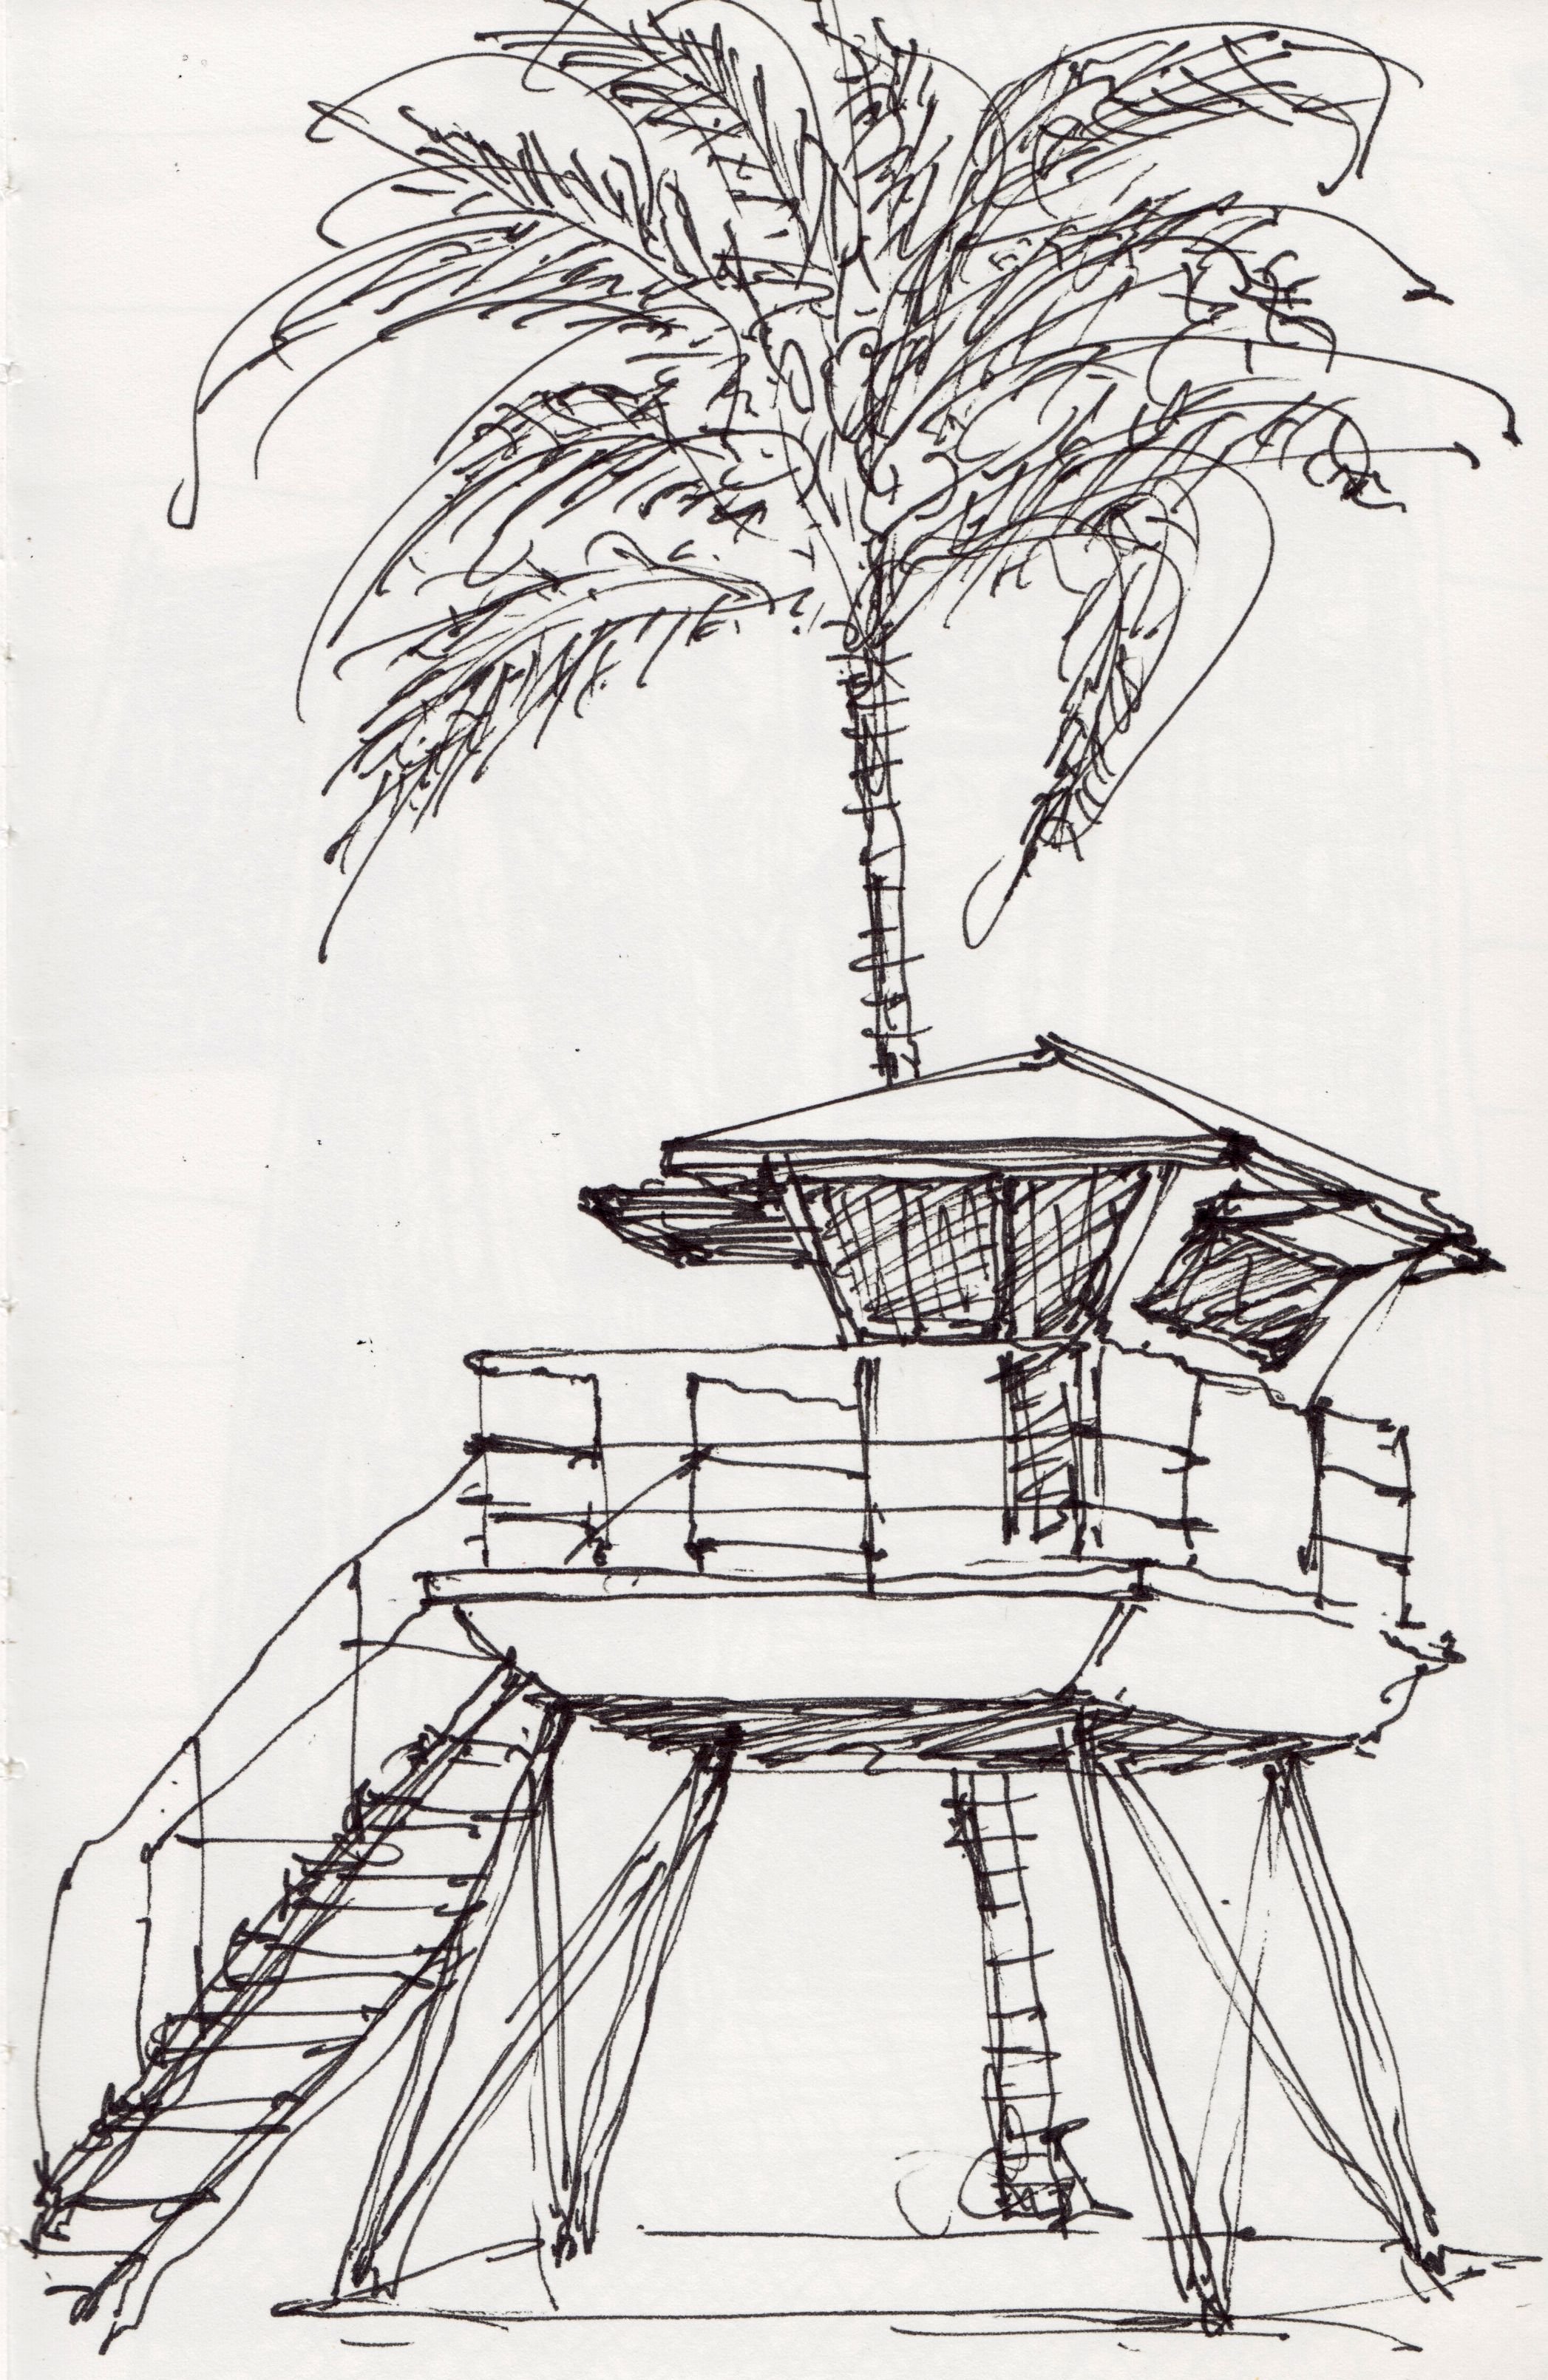 Lifeguard Tower In Hanalei Hawaii Sketchbook DrawingsHanalei HawaiiLifeguardBeach WavesPencil